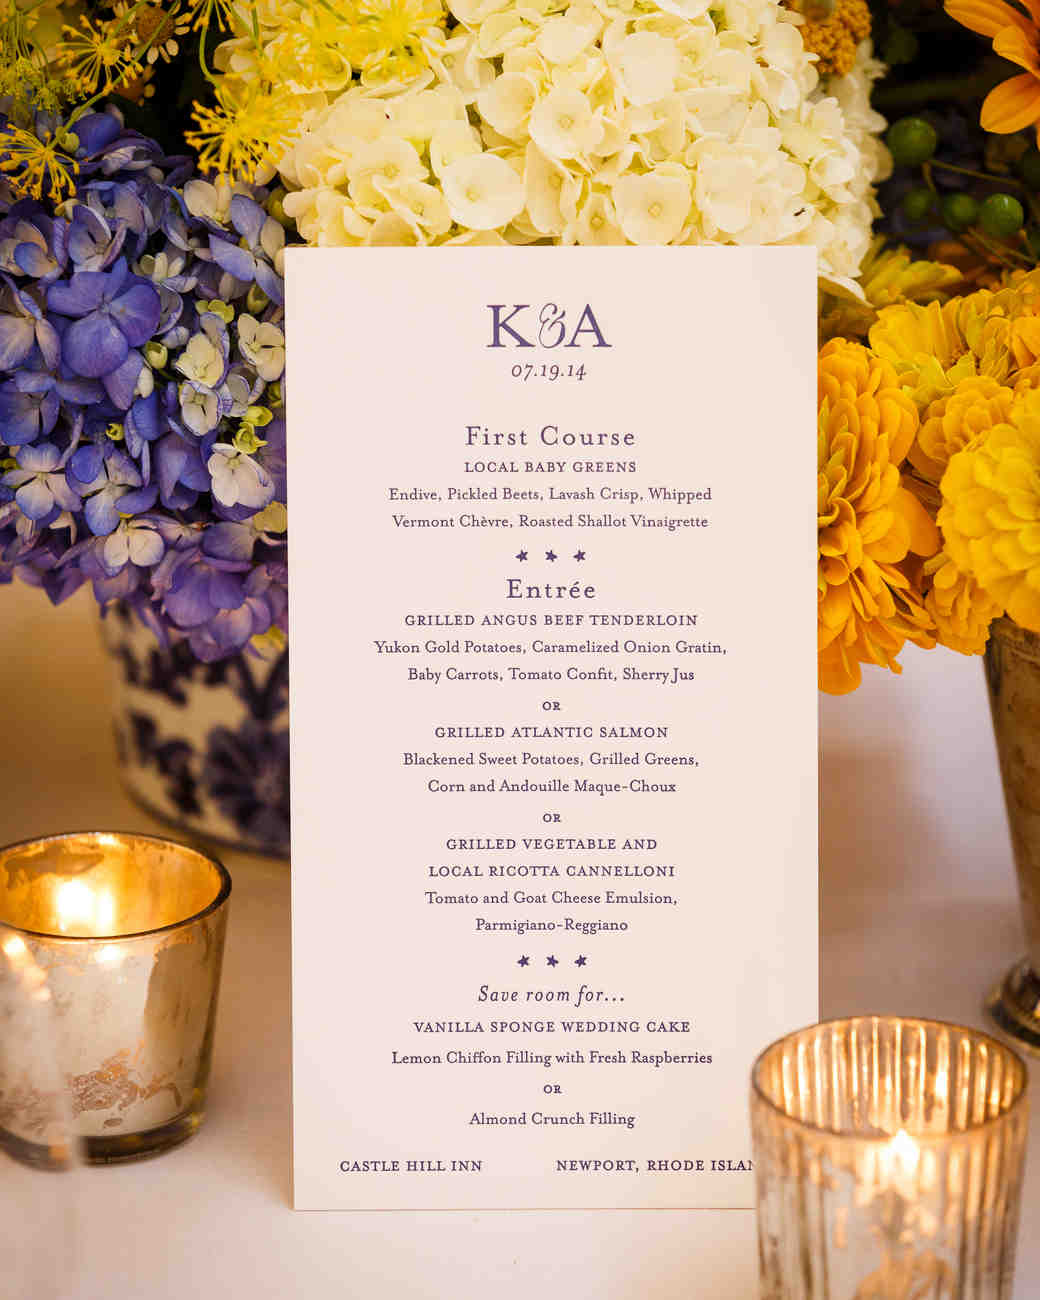 kristel-austin-wedding-menu-0963-s11860-0415.jpg